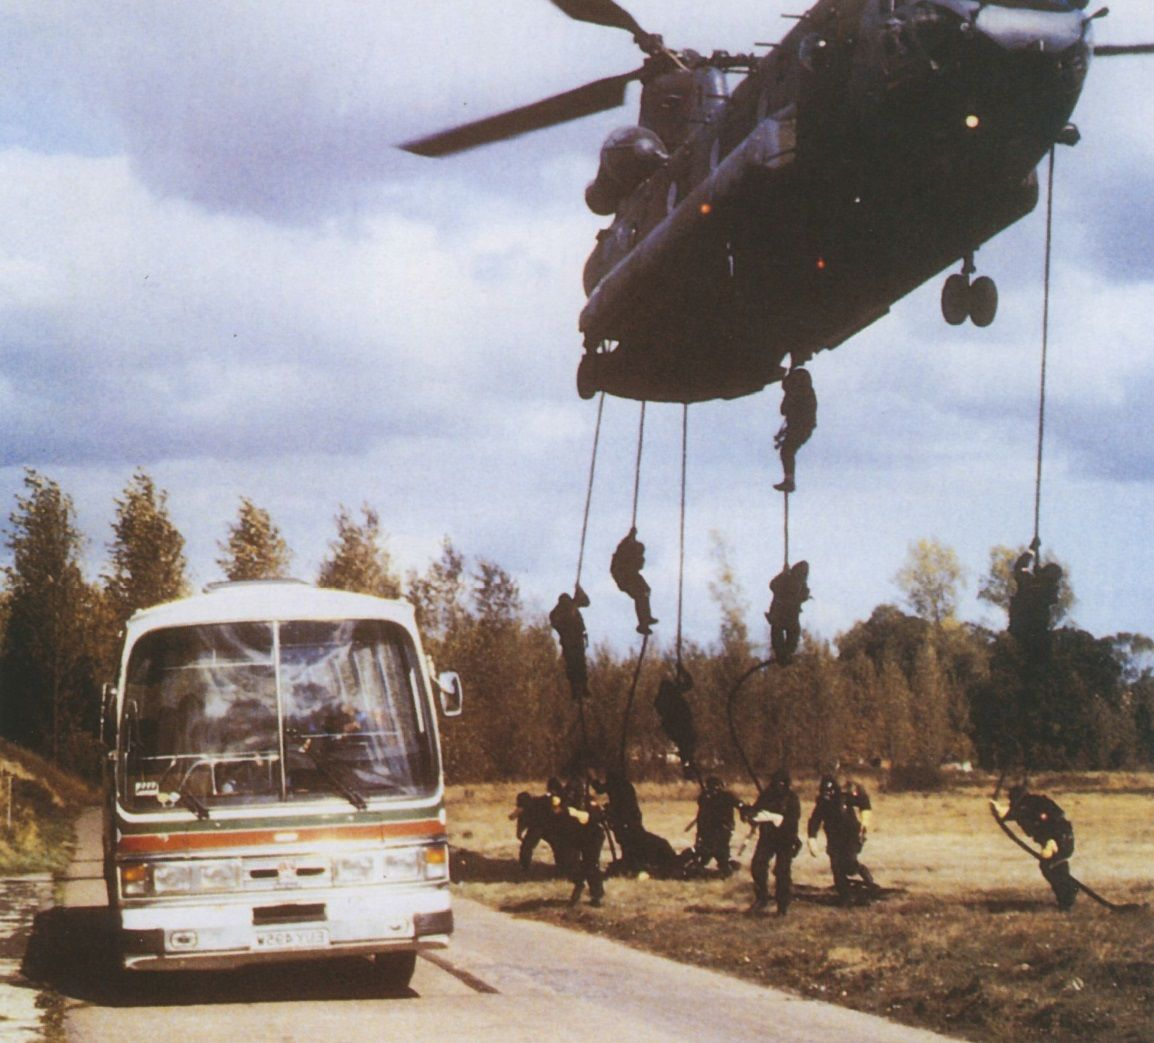 British SAS Bus takedown training, 1980s Military